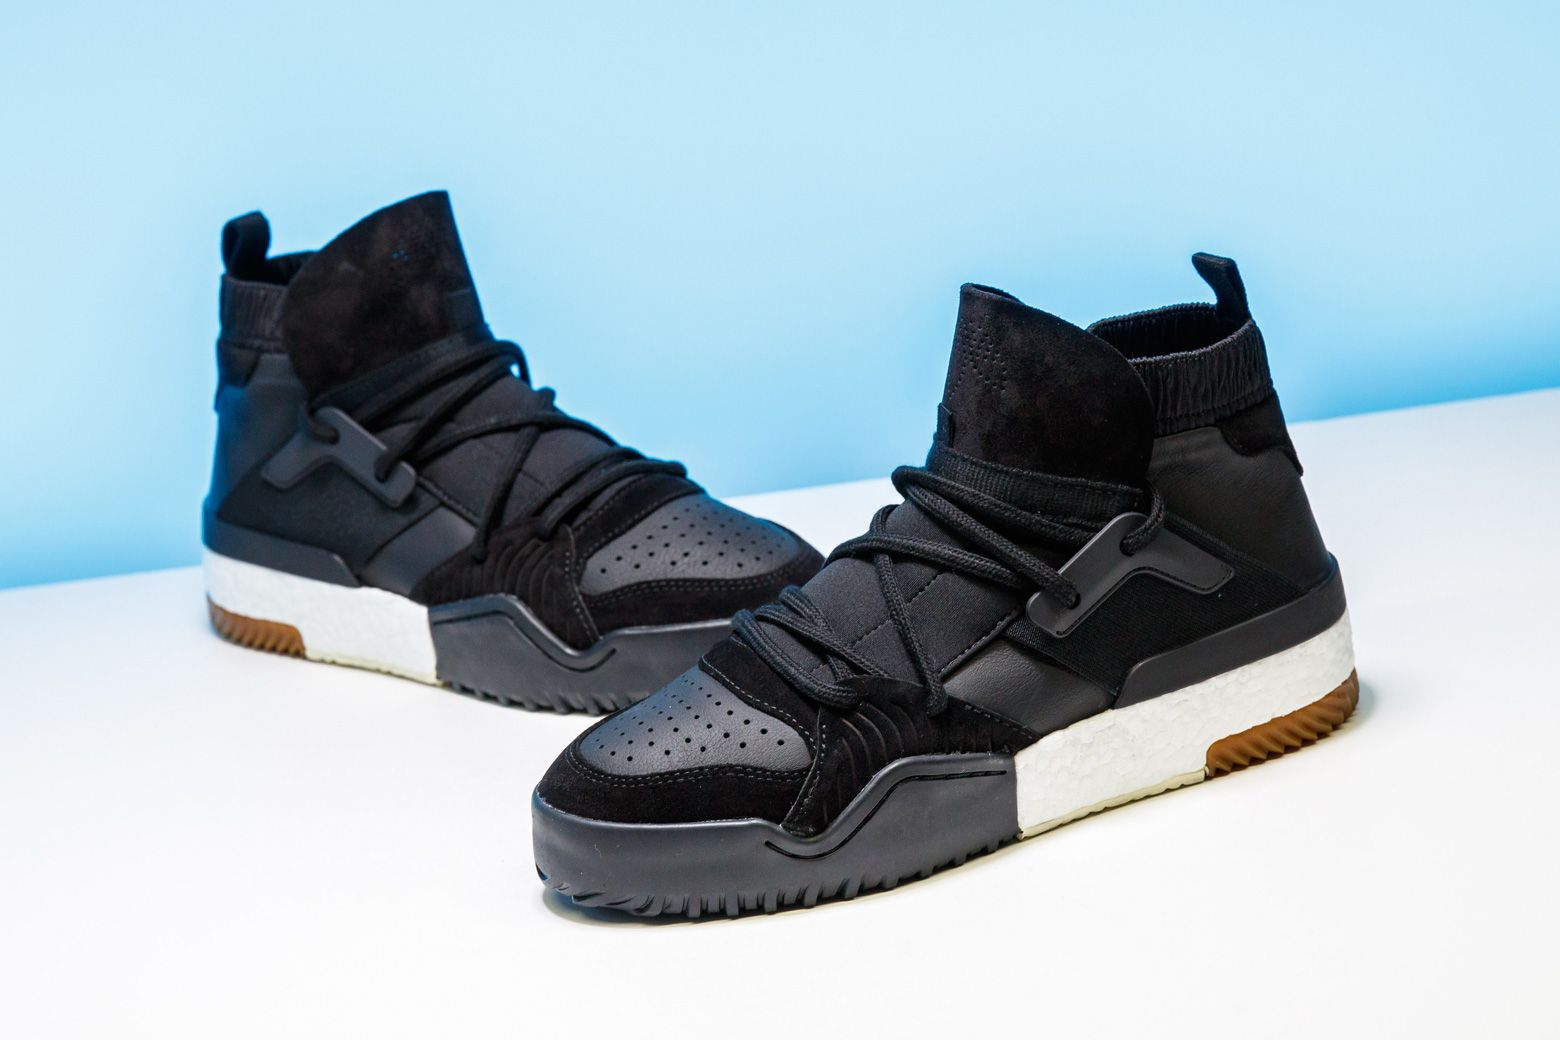 brand new dccab 08f8d From the parquet to high fashion, Alexander Wang and adidas dress up the AW  BBall